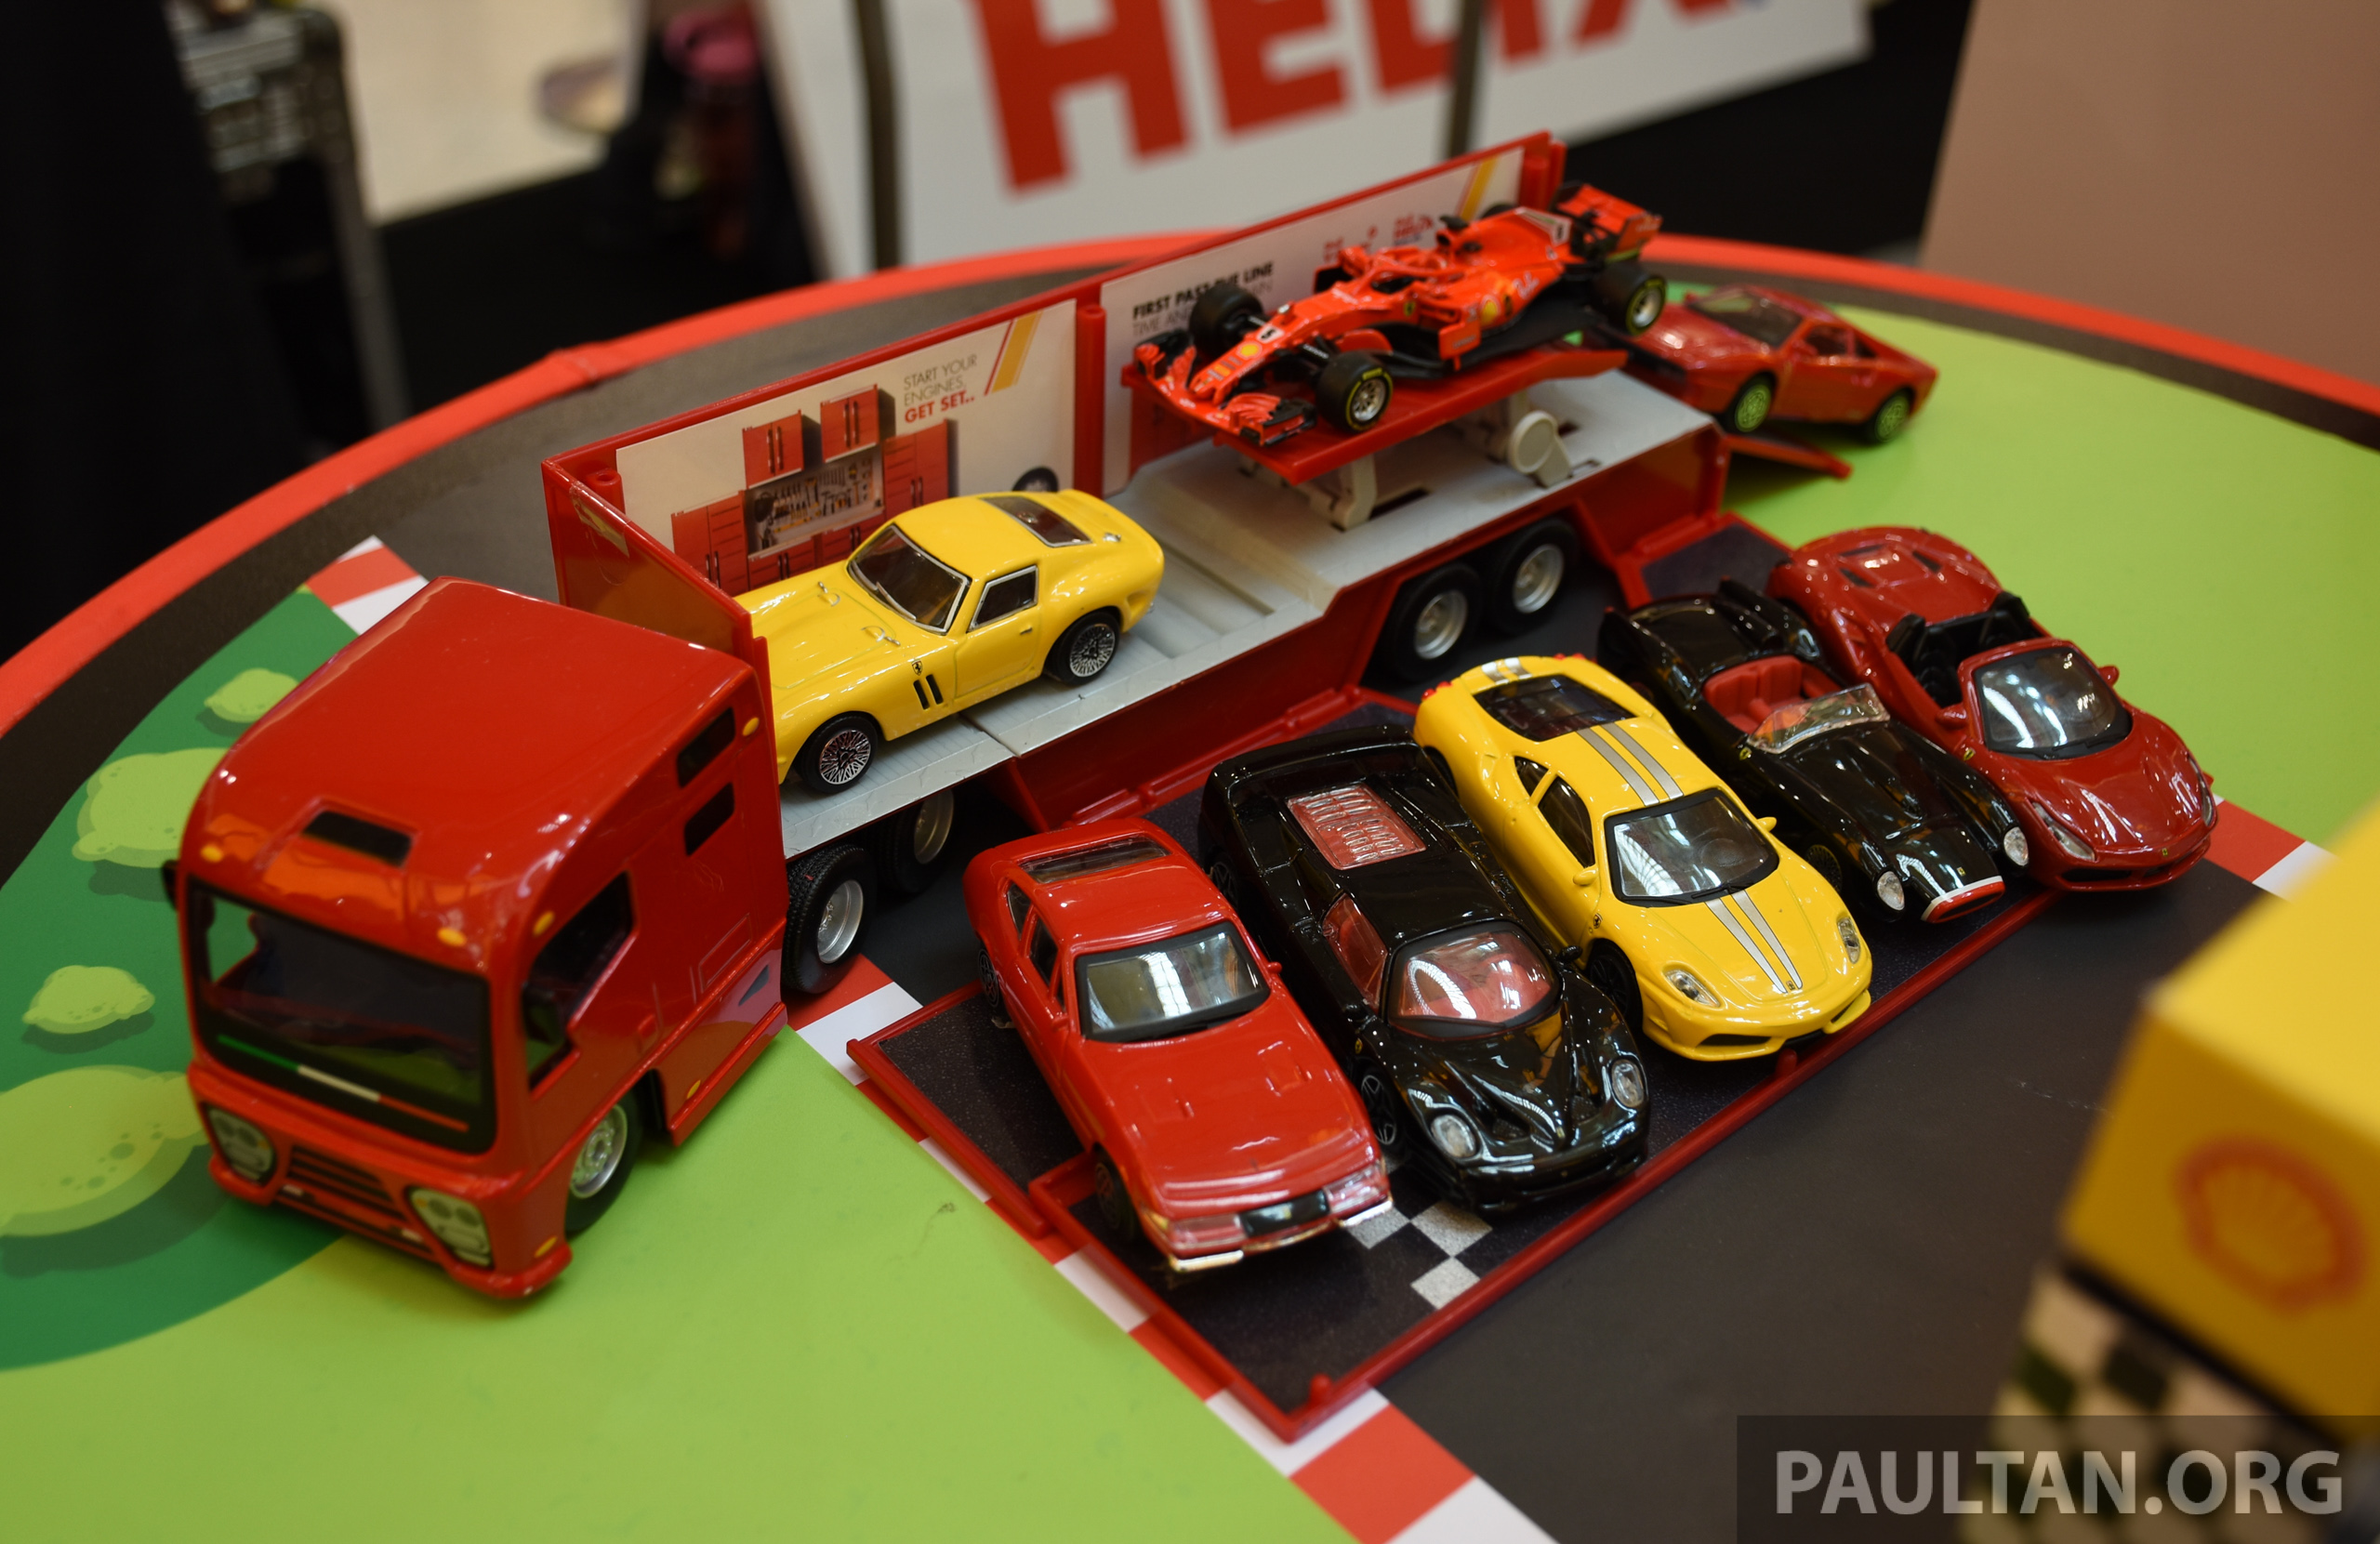 Shell Malaysia Launches Ferrari Car Collectibles Two New Models Every 2 Weeks Until Sept 8 Rm15 90 Each Paultan Org